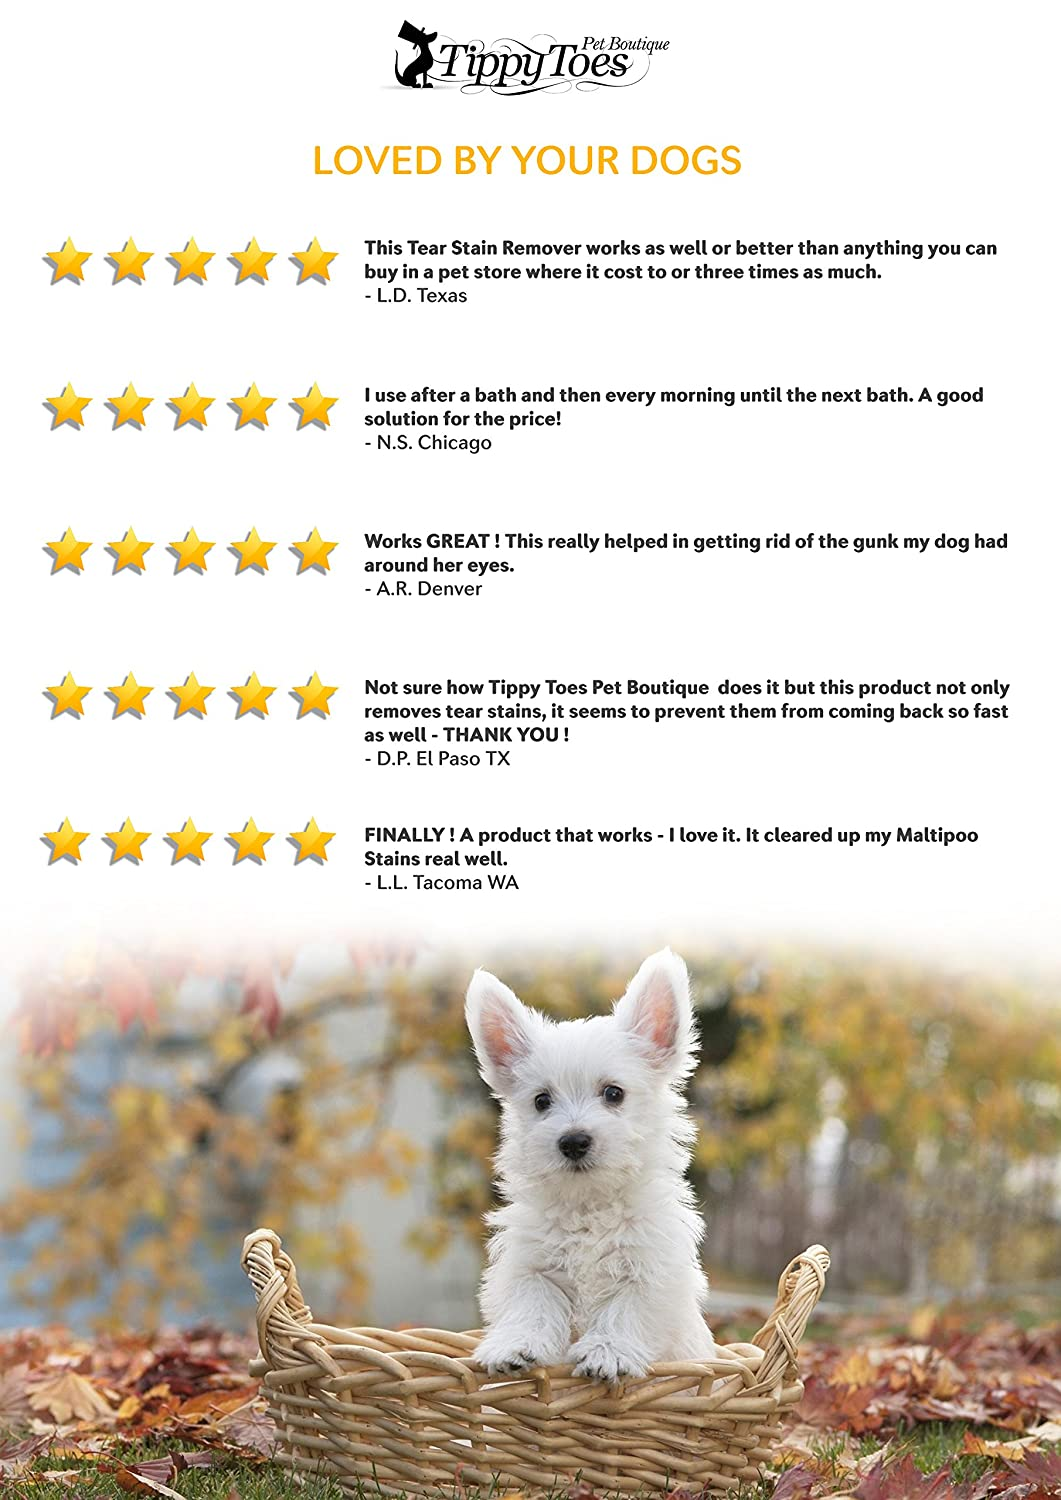 Amazon tear stain remover for dogs natural and gentle on amazon tear stain remover for dogs natural and gentle on white fur our premium quality treatment cleans your dogs tears and remove eye build up solutioingenieria Gallery